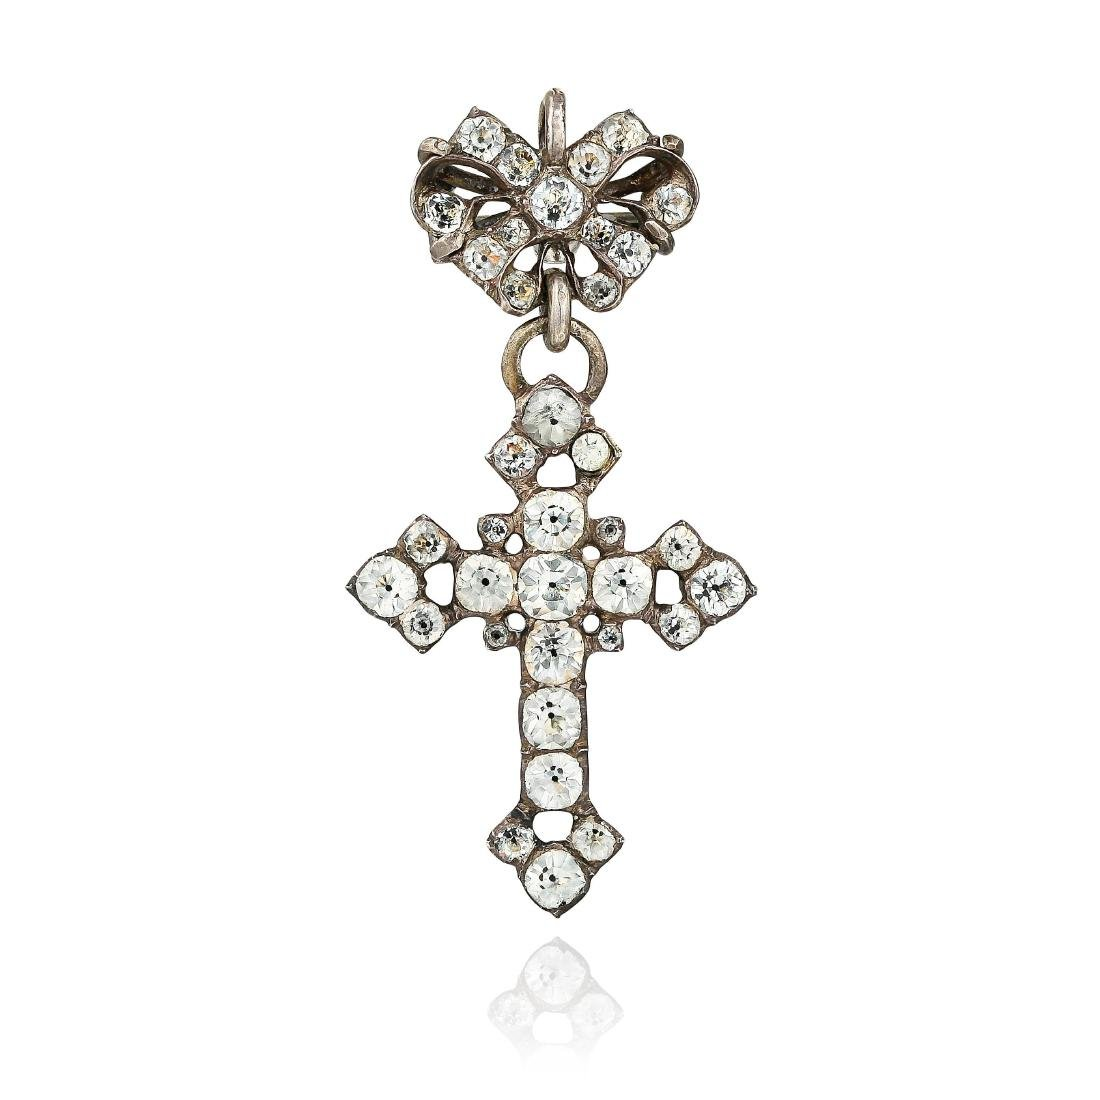 An Antique Paste Cross Pendant